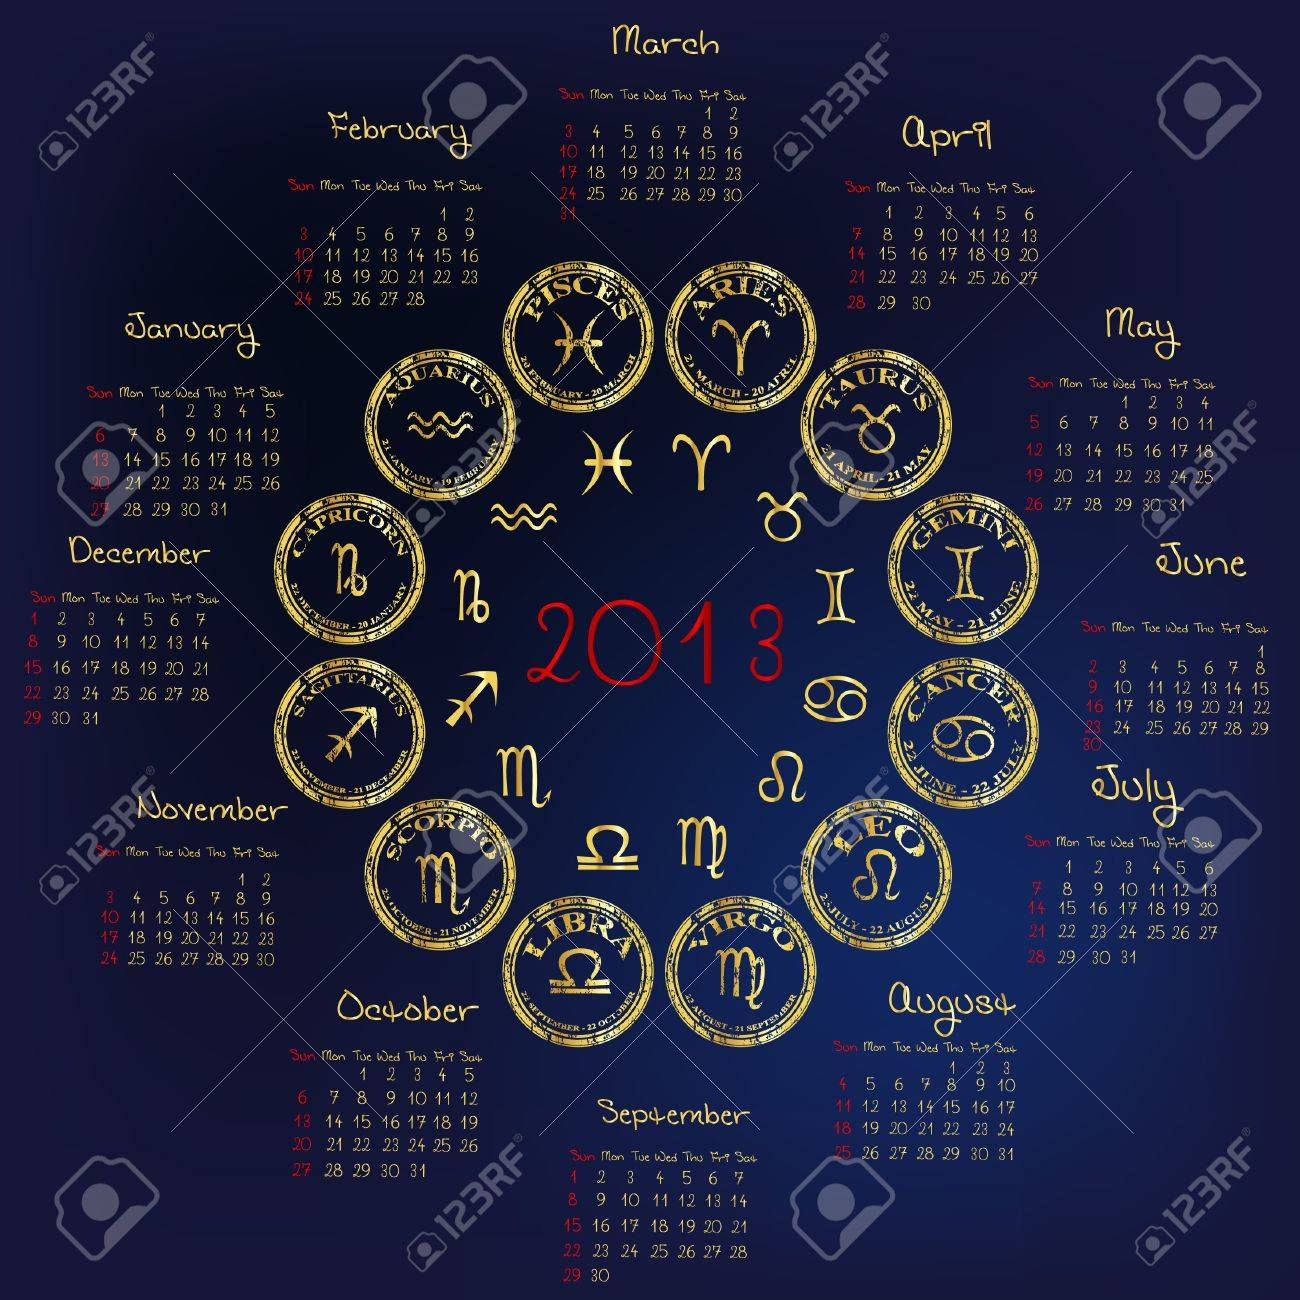 2013 Calendar with astrology signs Stock Vector - 14493243